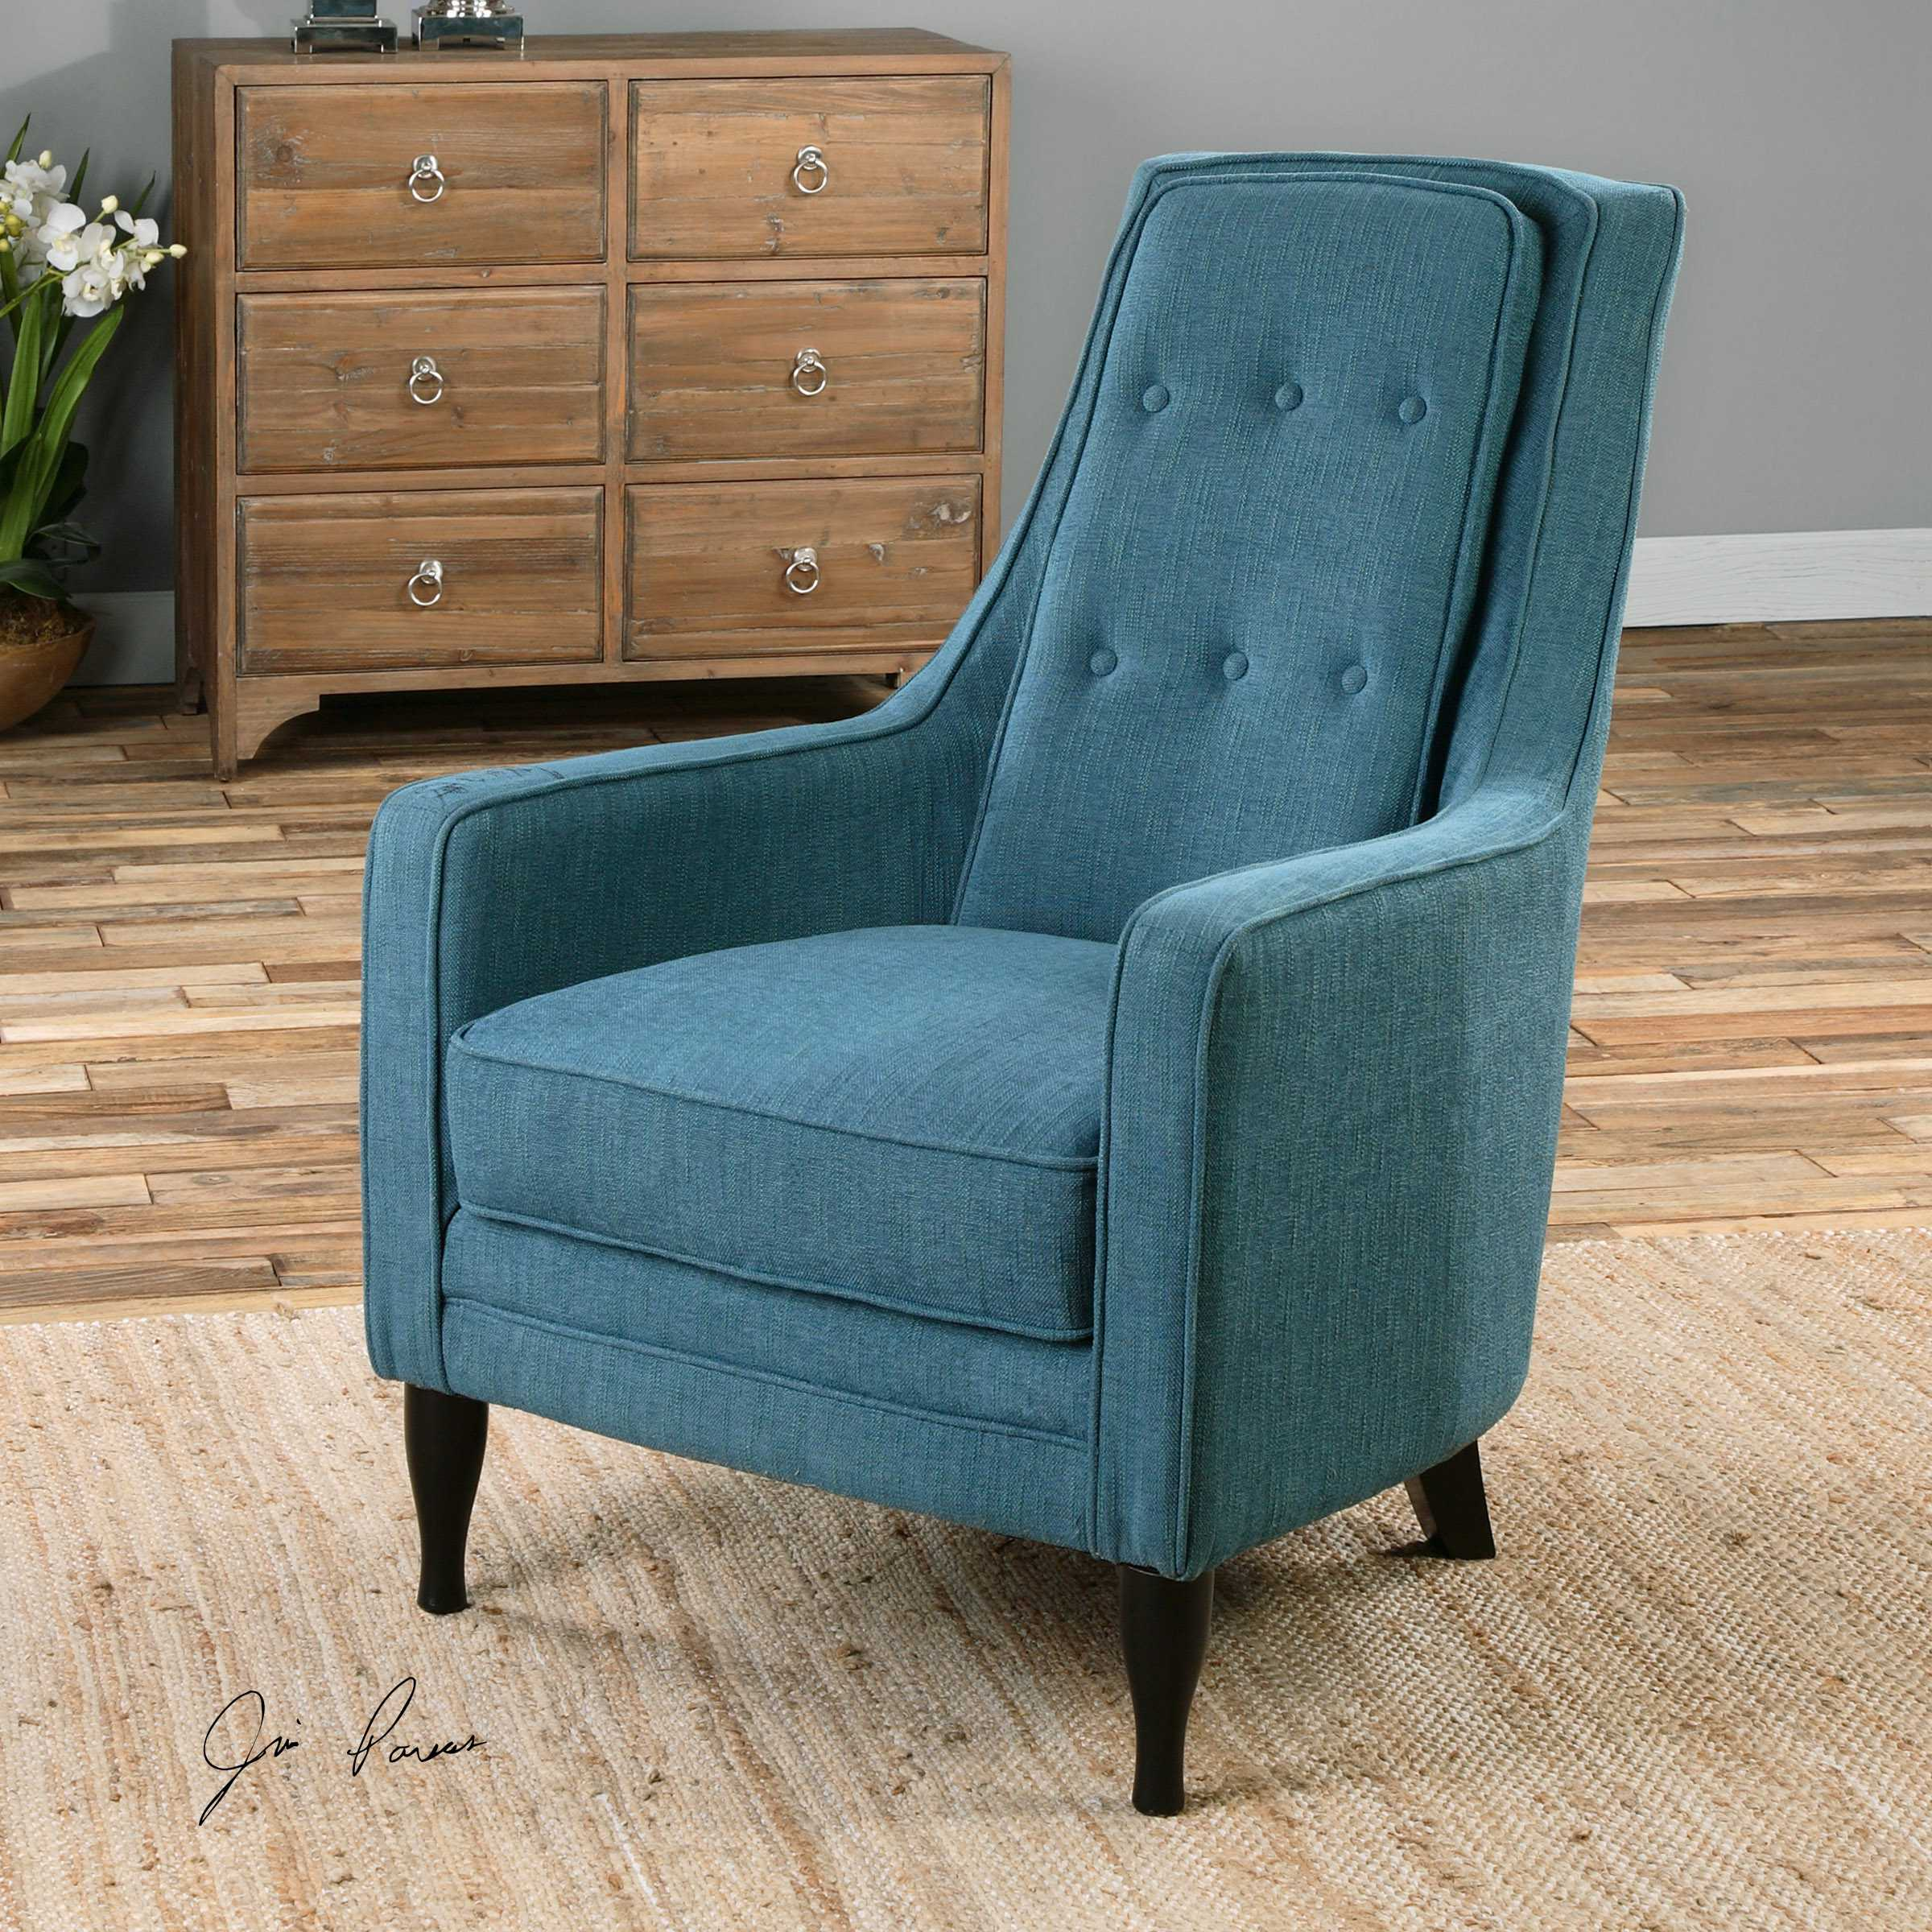 Peacock Blue Accent Chair Uttermost Katana Peacock Blue Accent Chair Ut23192